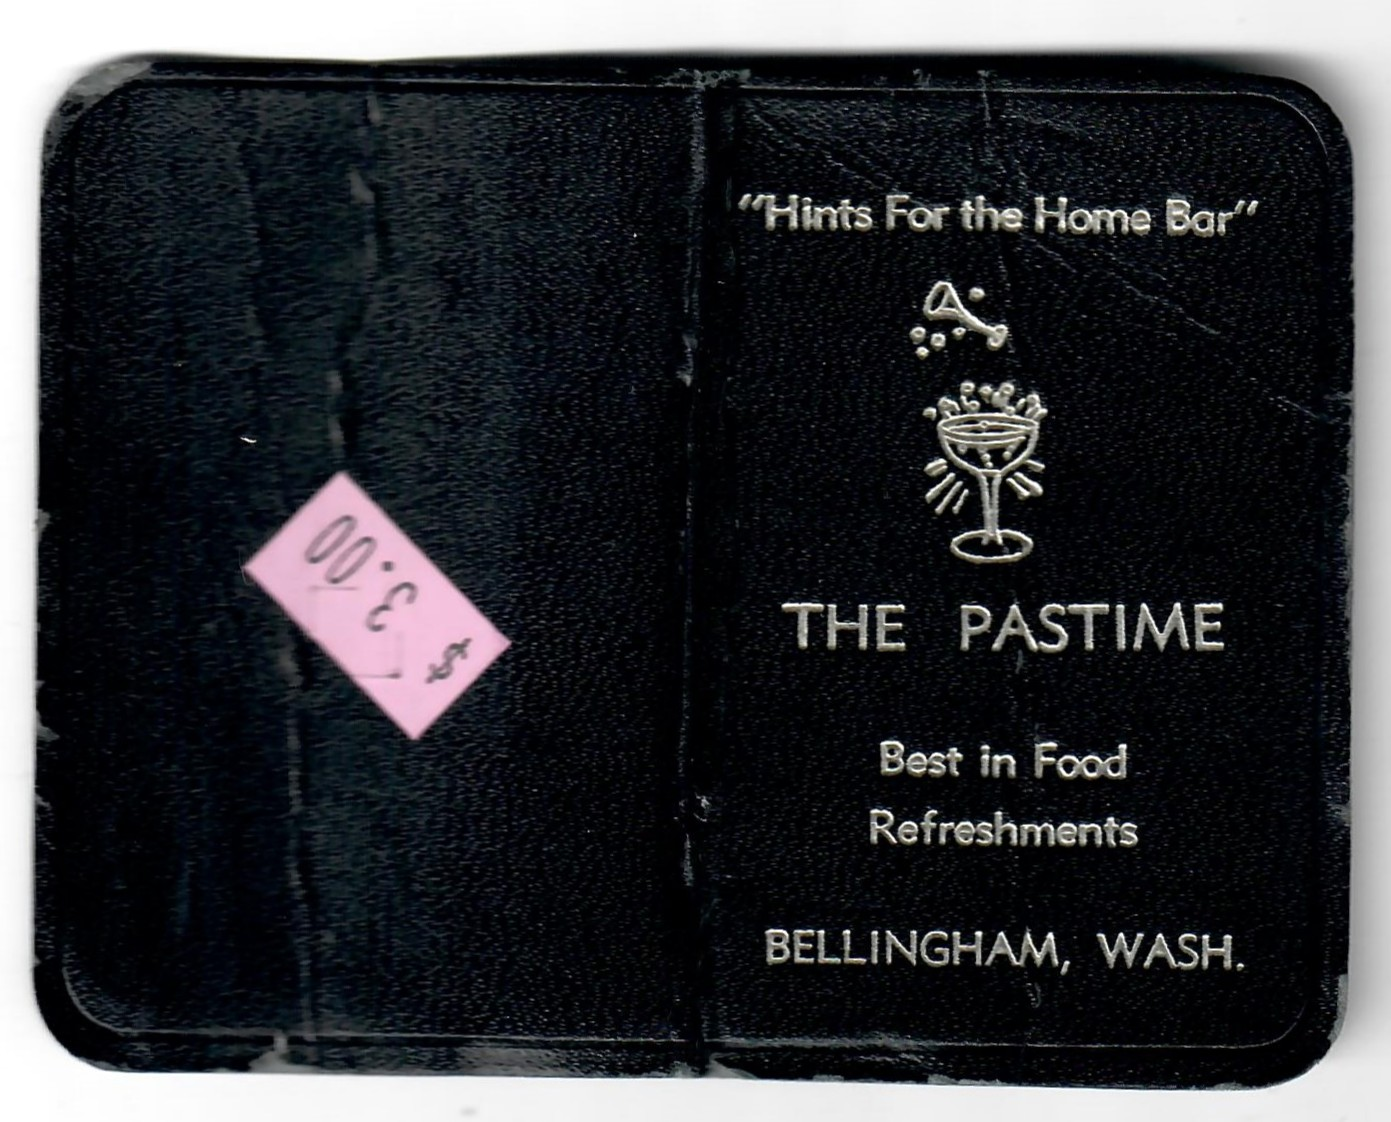 01 The Pastime  Hints for the Home Bar 1953 01.jpg